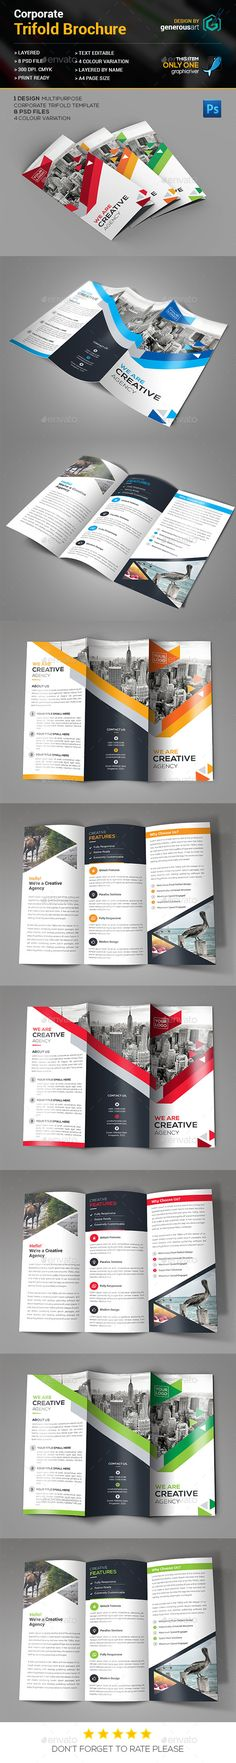 Trifold Brochure Template PSD #design Download: http://graphicriver.net/item/trifold-brochure/13309986?ref=ksioks